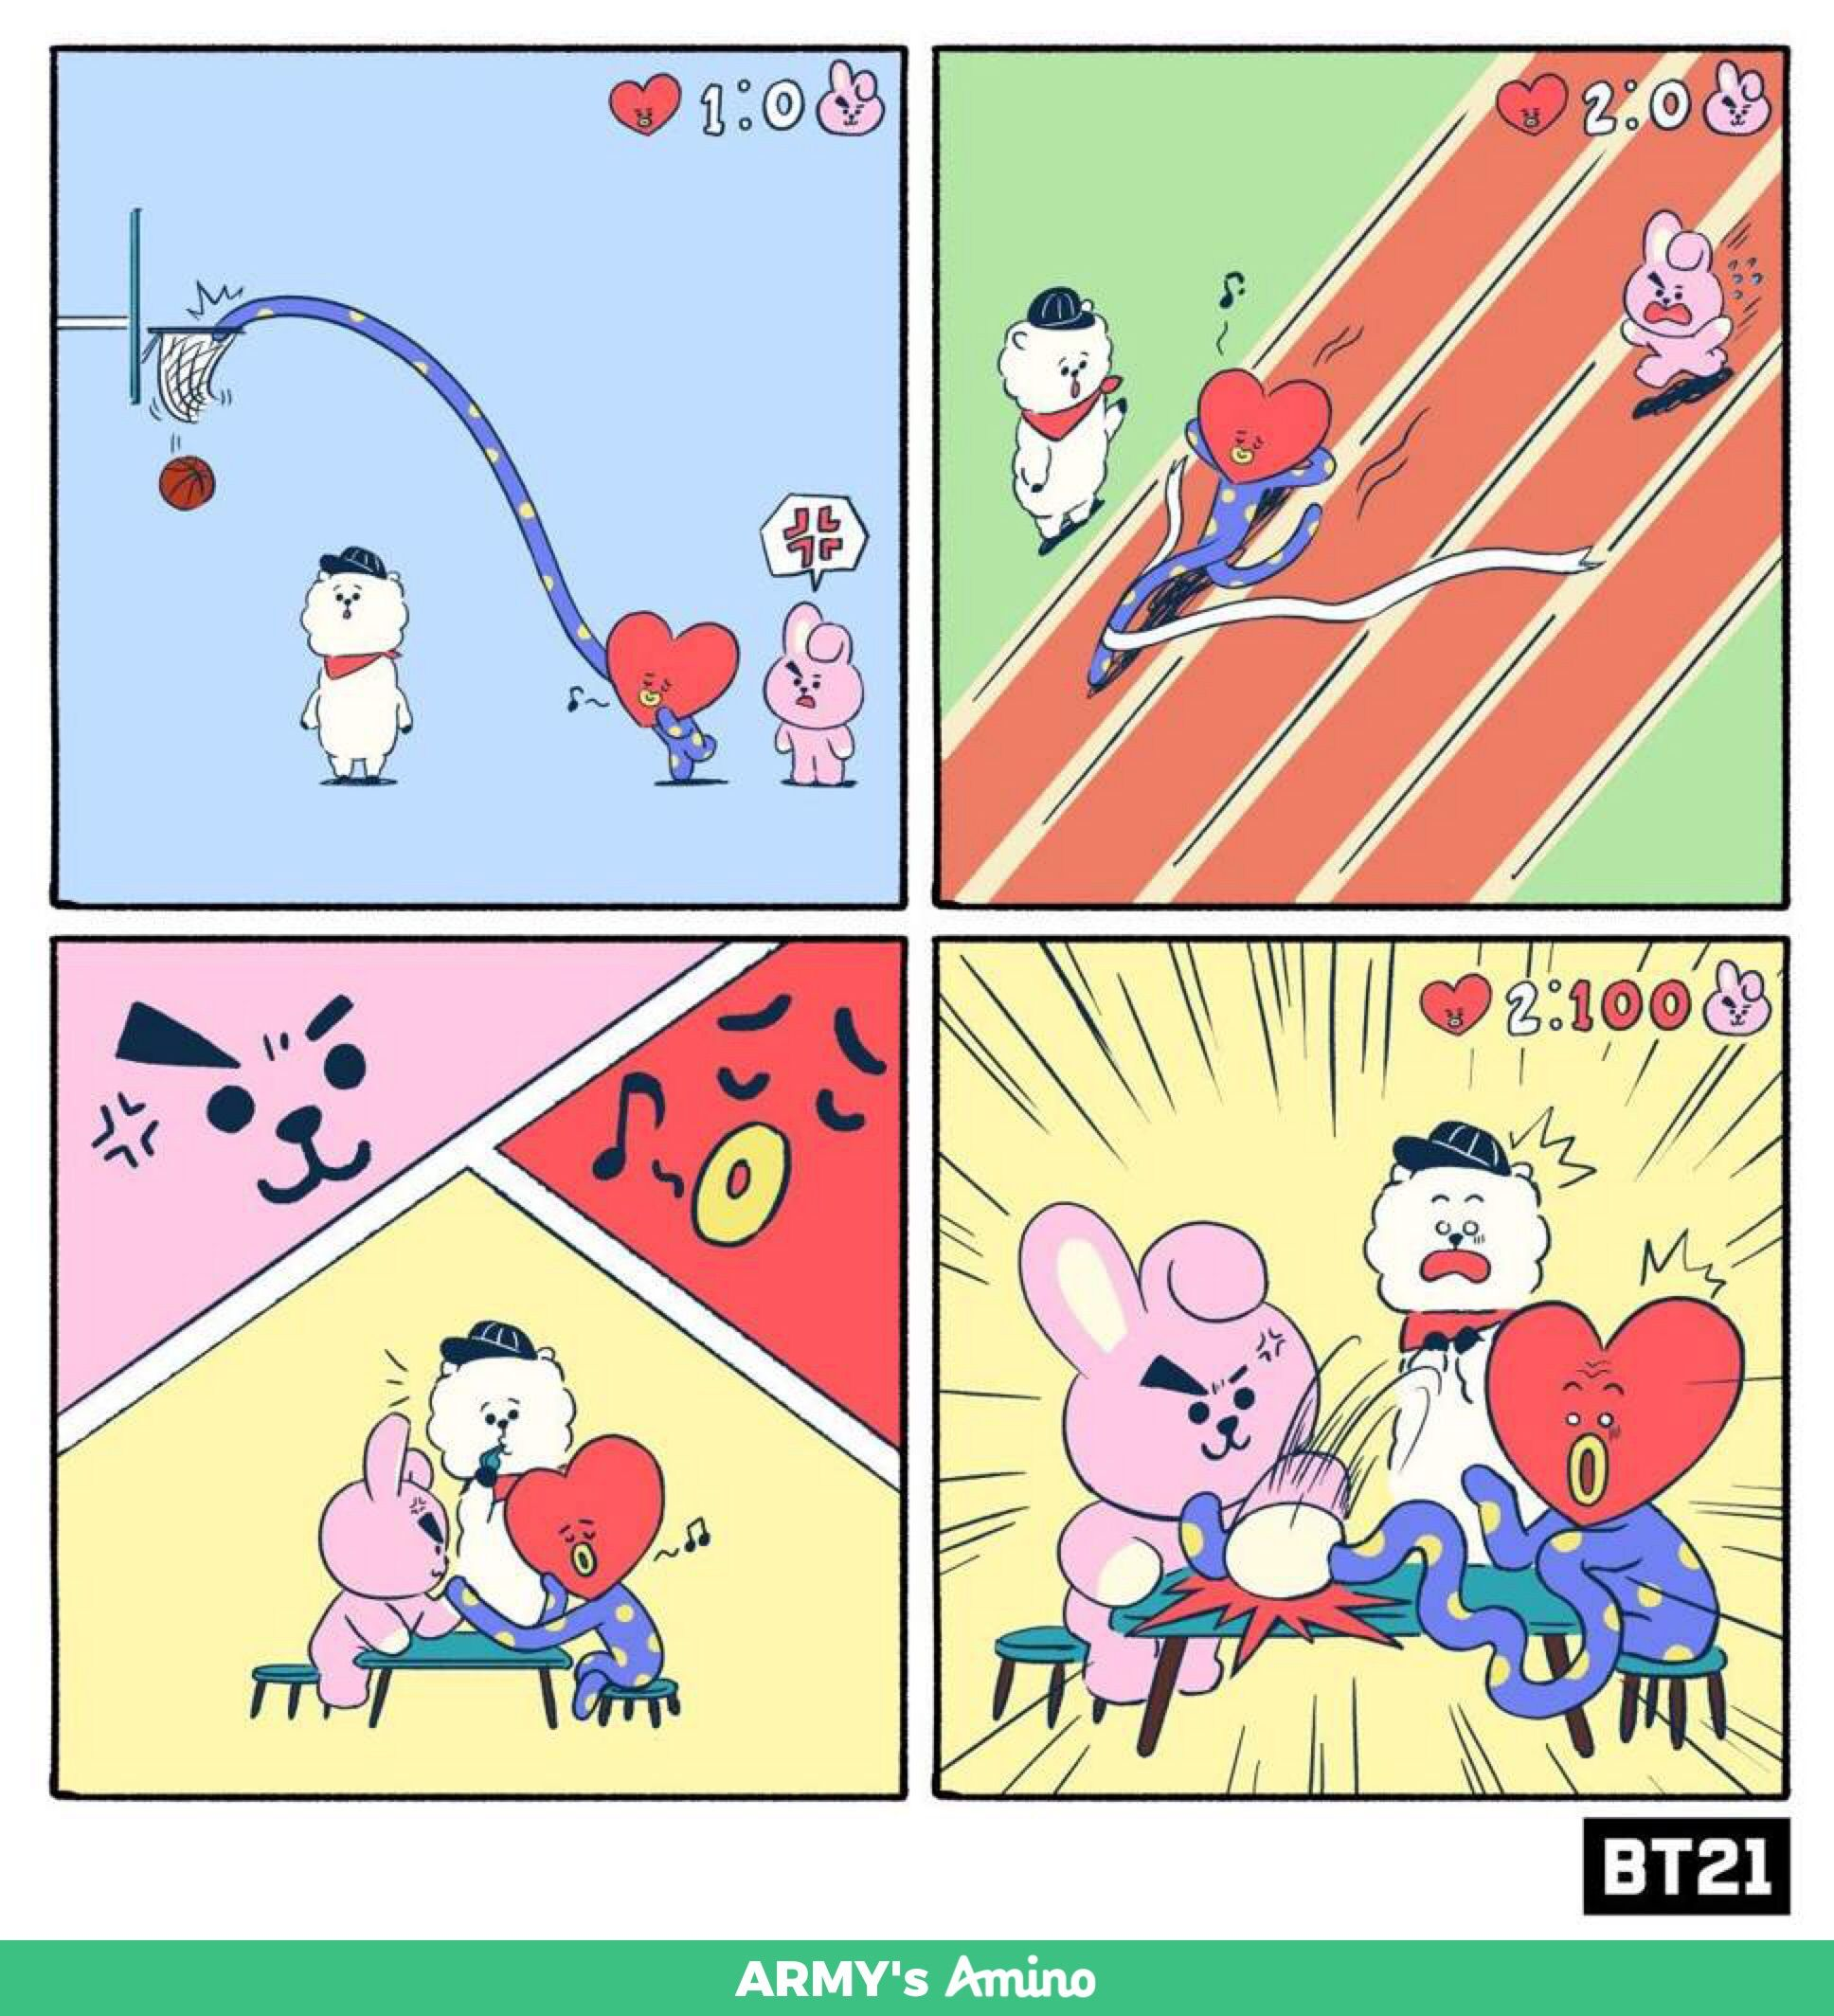 BT21 Updates March- Vlive, Twitter, LINE STORES | ARMY's Amino